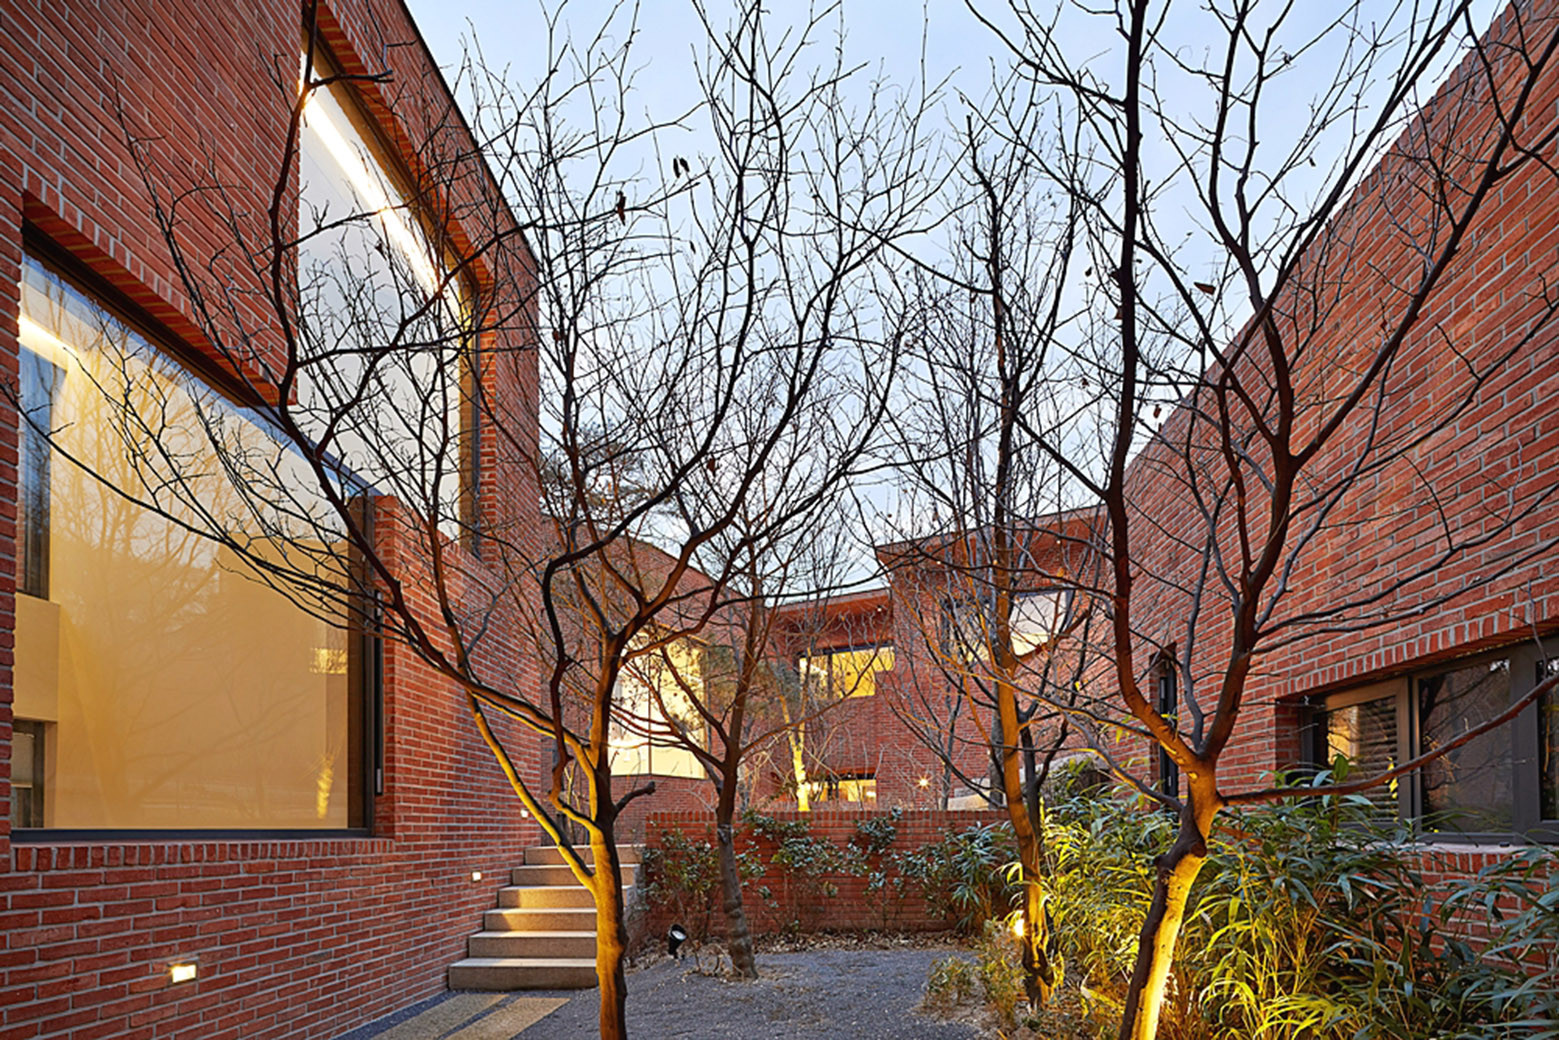 Fortress Brick House Wise Architecture Archdaily